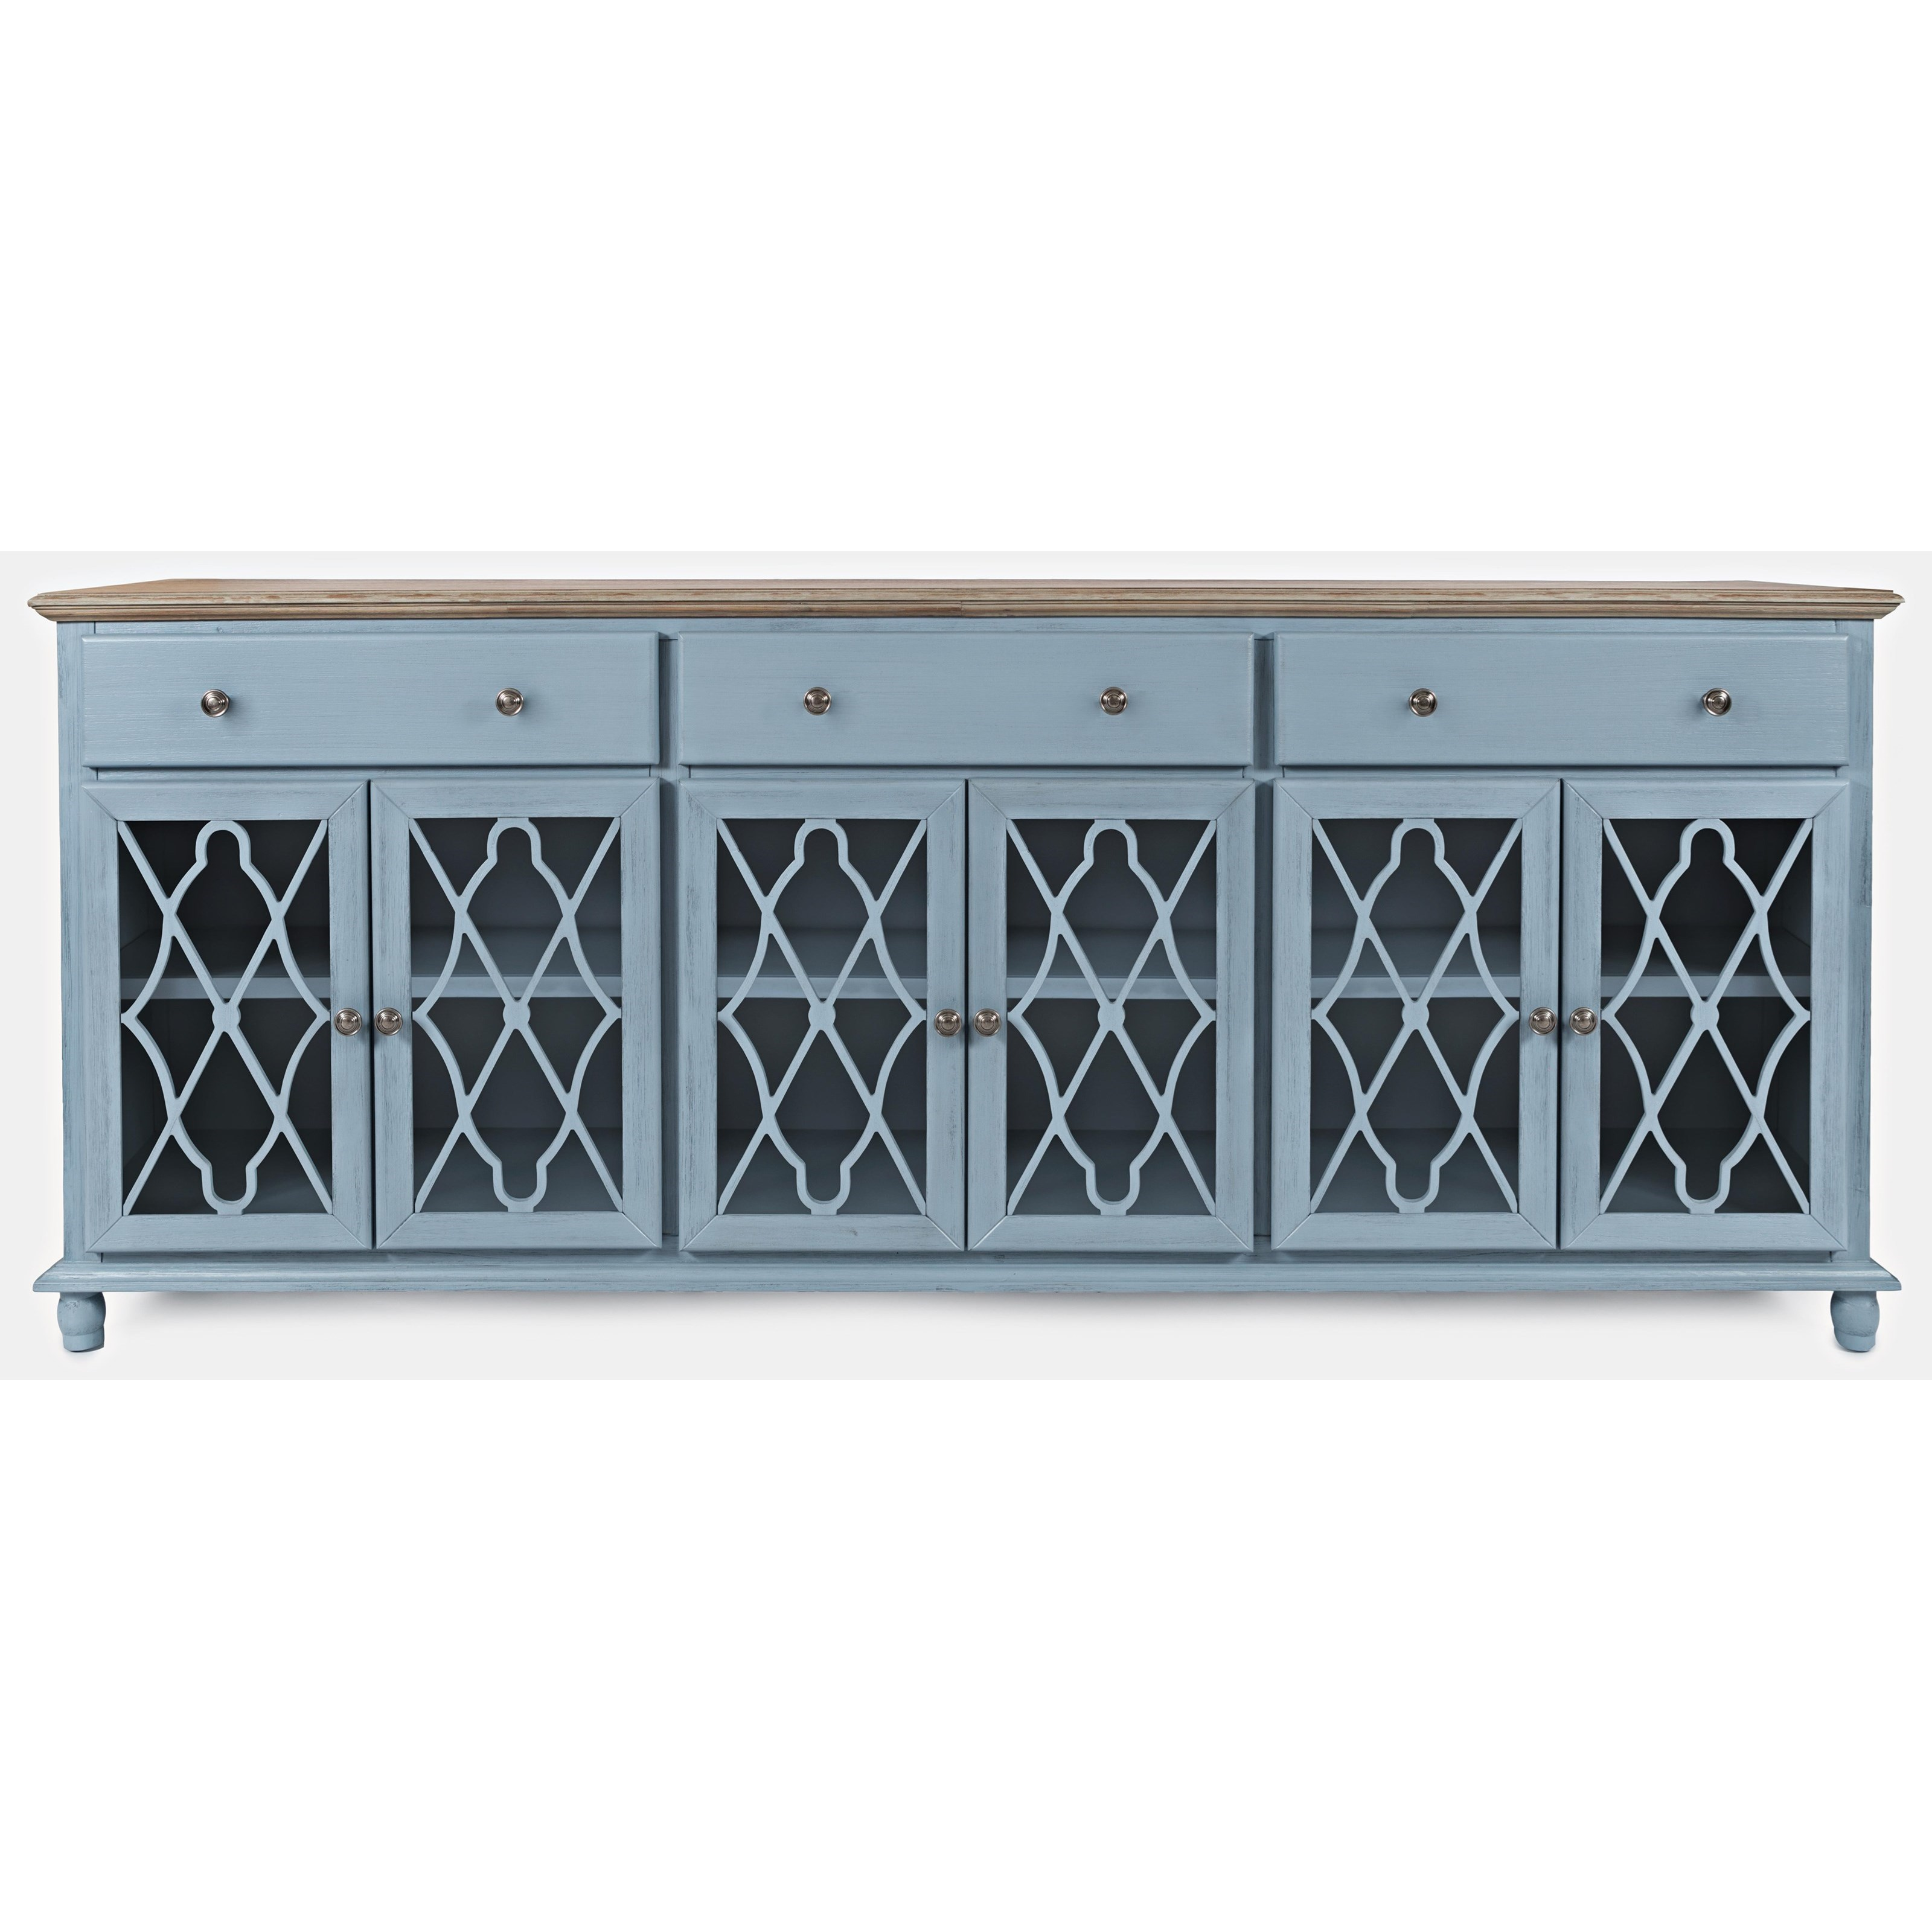 Aurora Hills 6-Door Accent Chest by Jofran at Simply Home by Lindy's